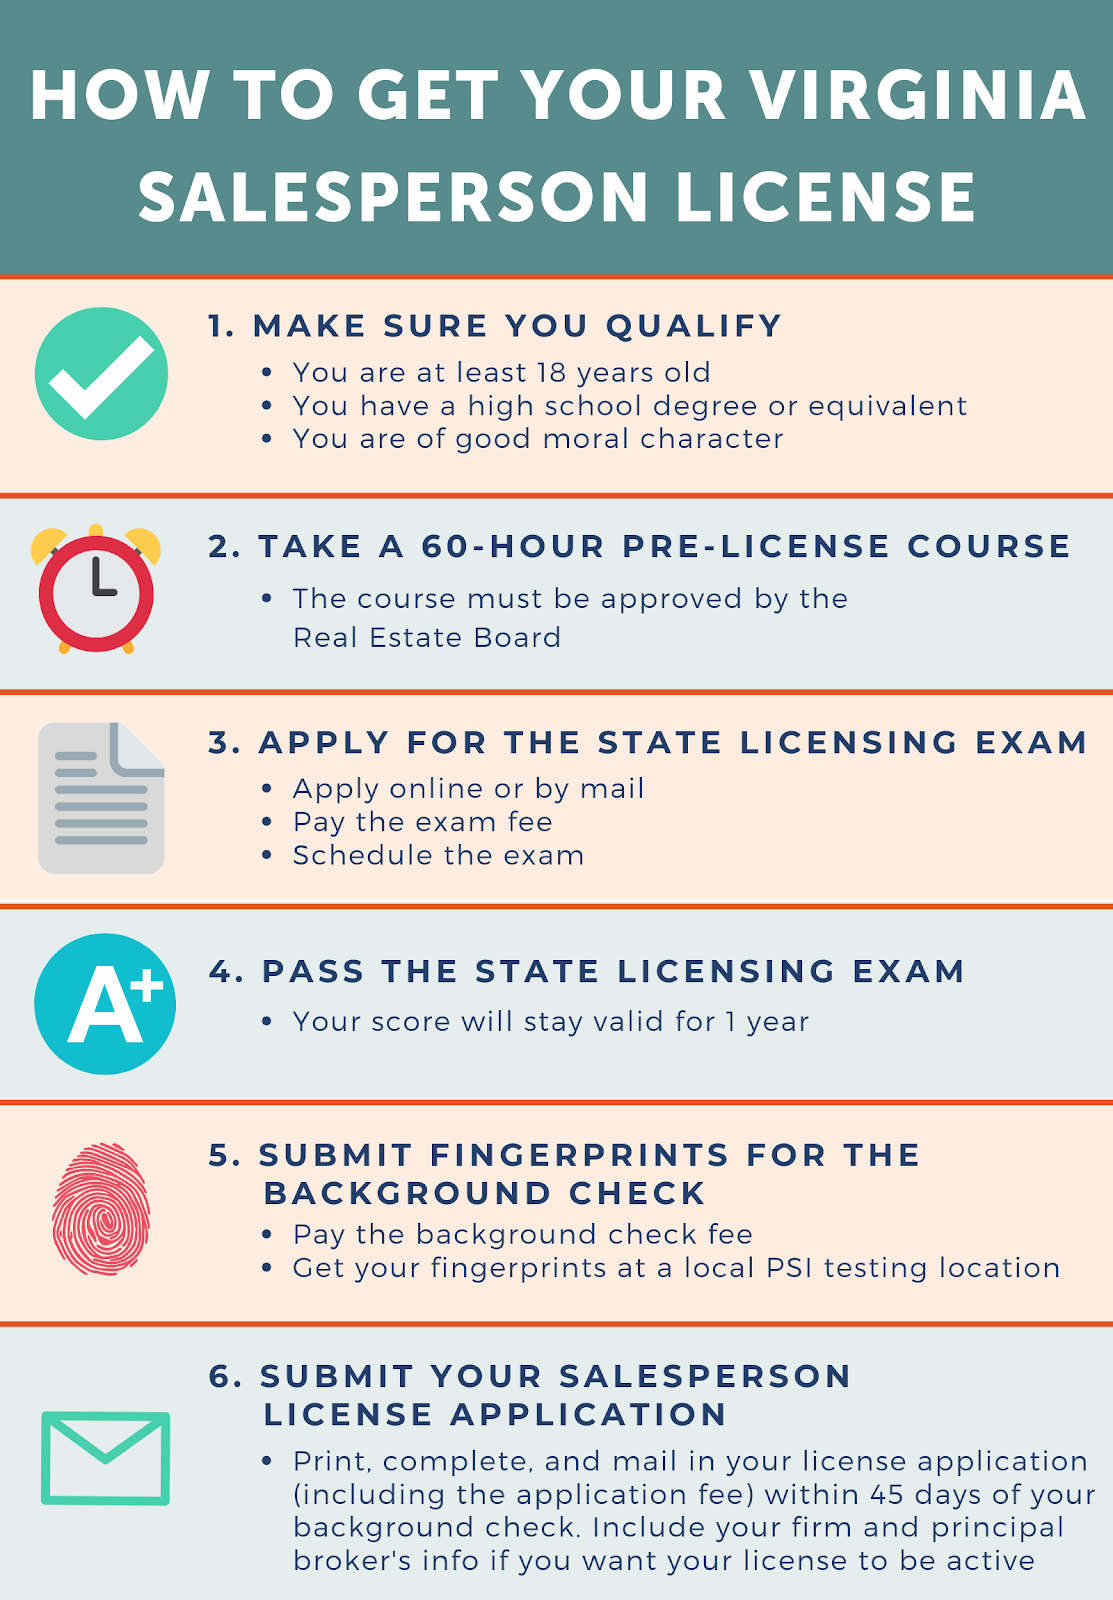 How to Get your Virginia Sales Person License steps